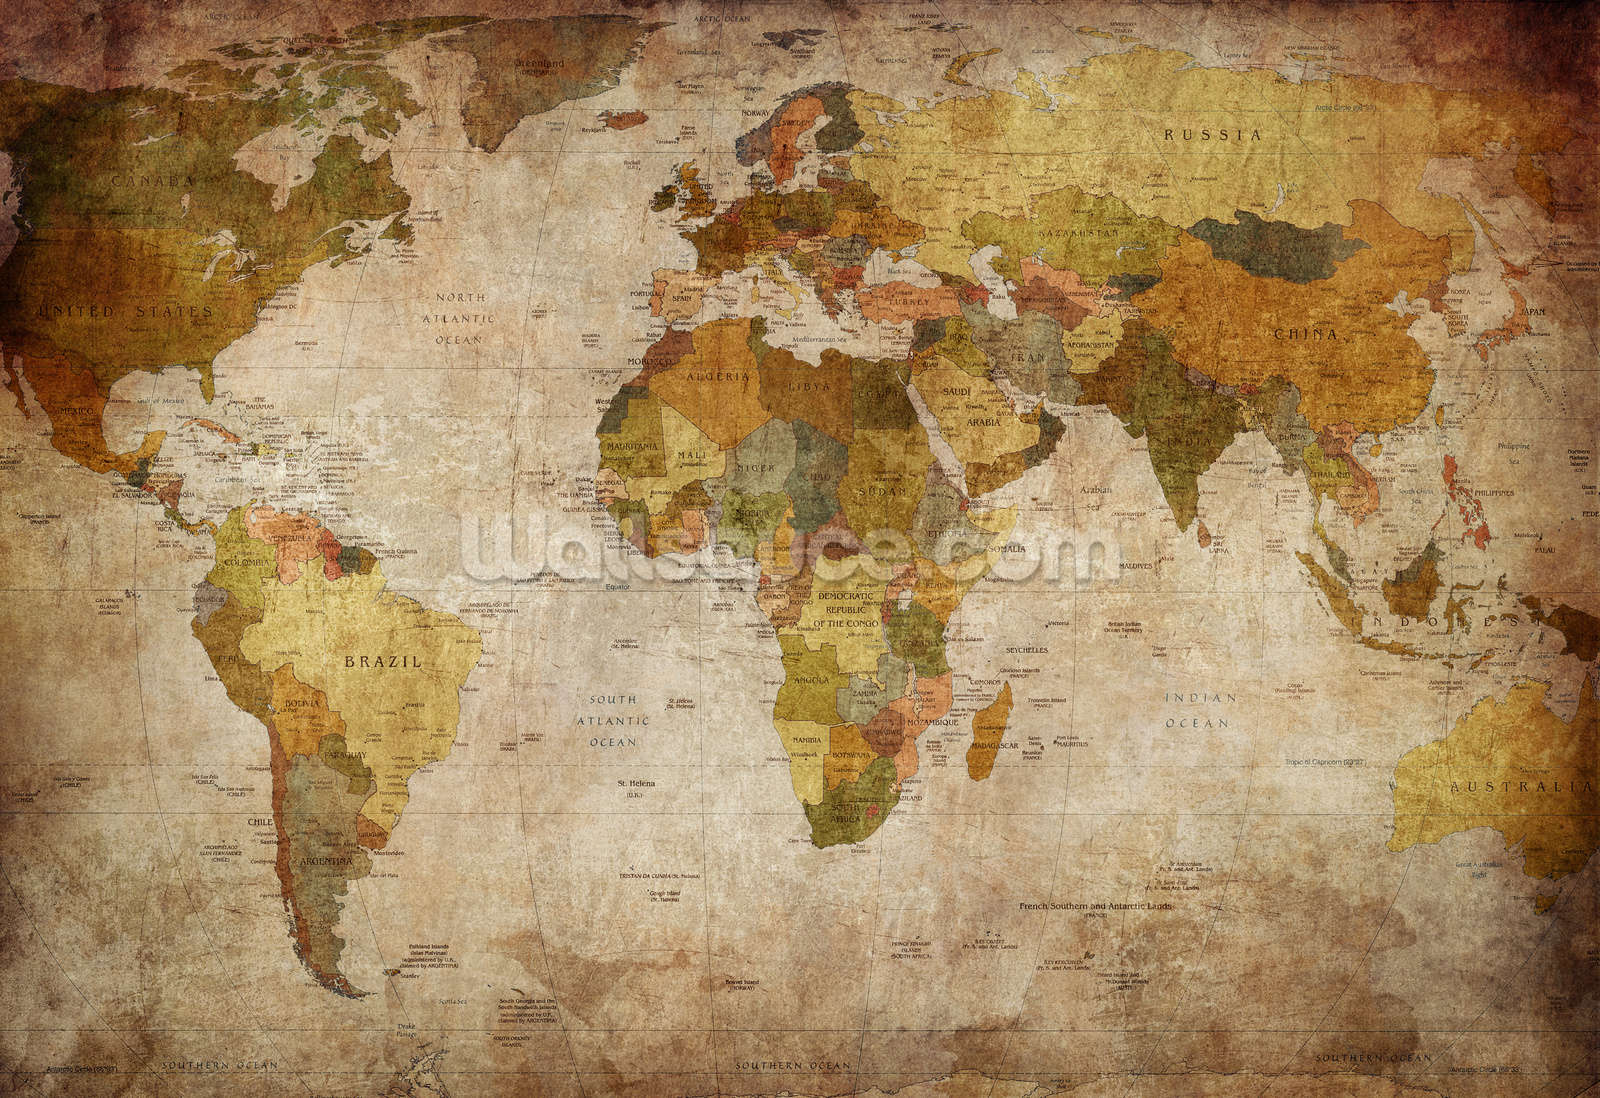 Old style world map old style world map wall mural gumiabroncs Gallery